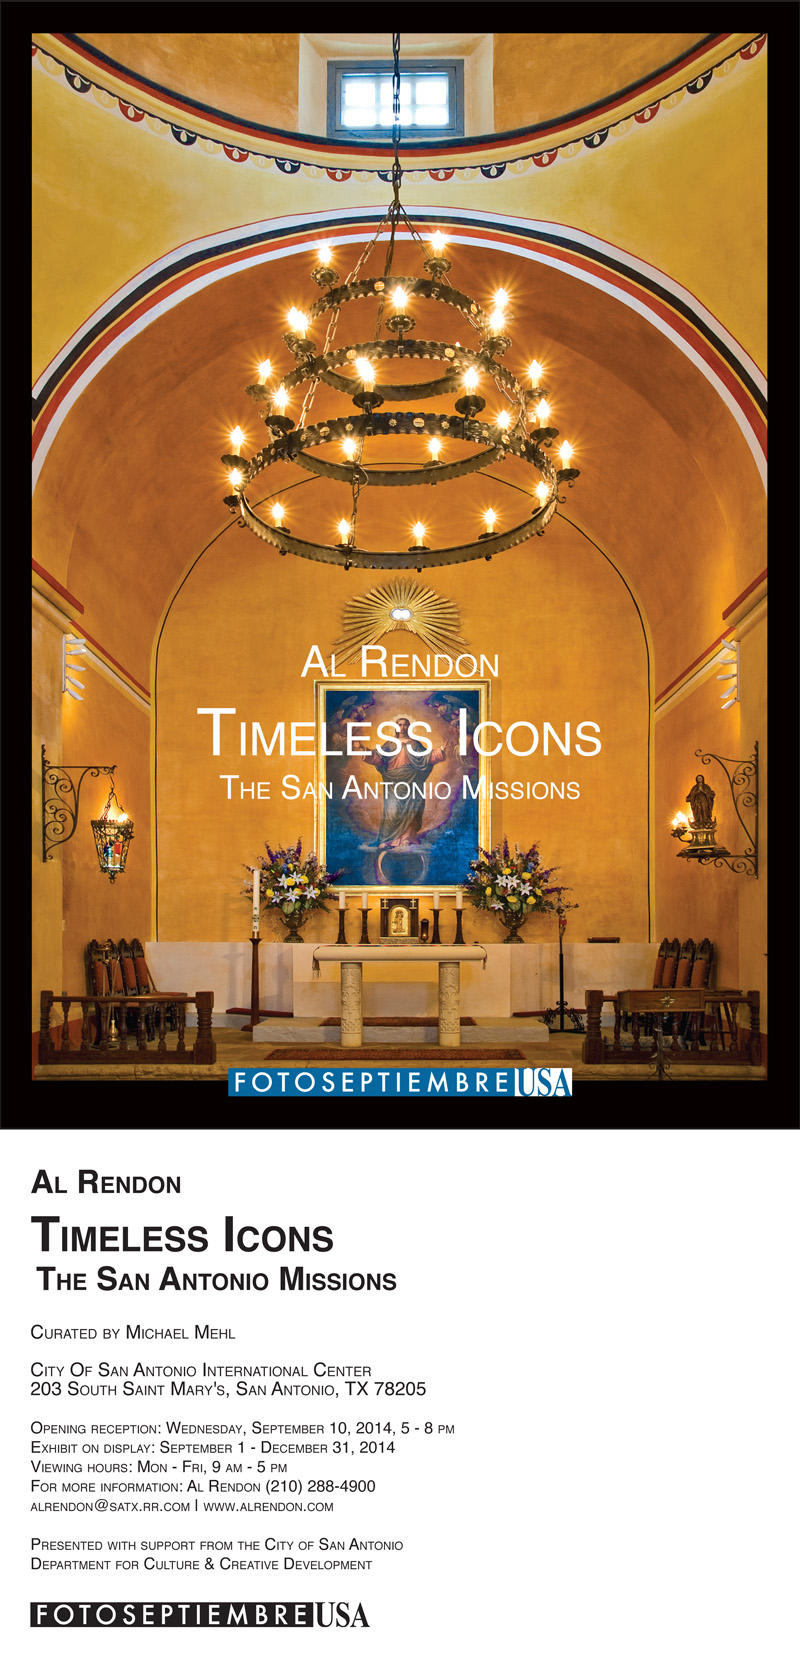 2104-FOTOSEPTIEMBRE-USA_Al-Rendon_Timeless-Icons-Exhibit-Promo-Card